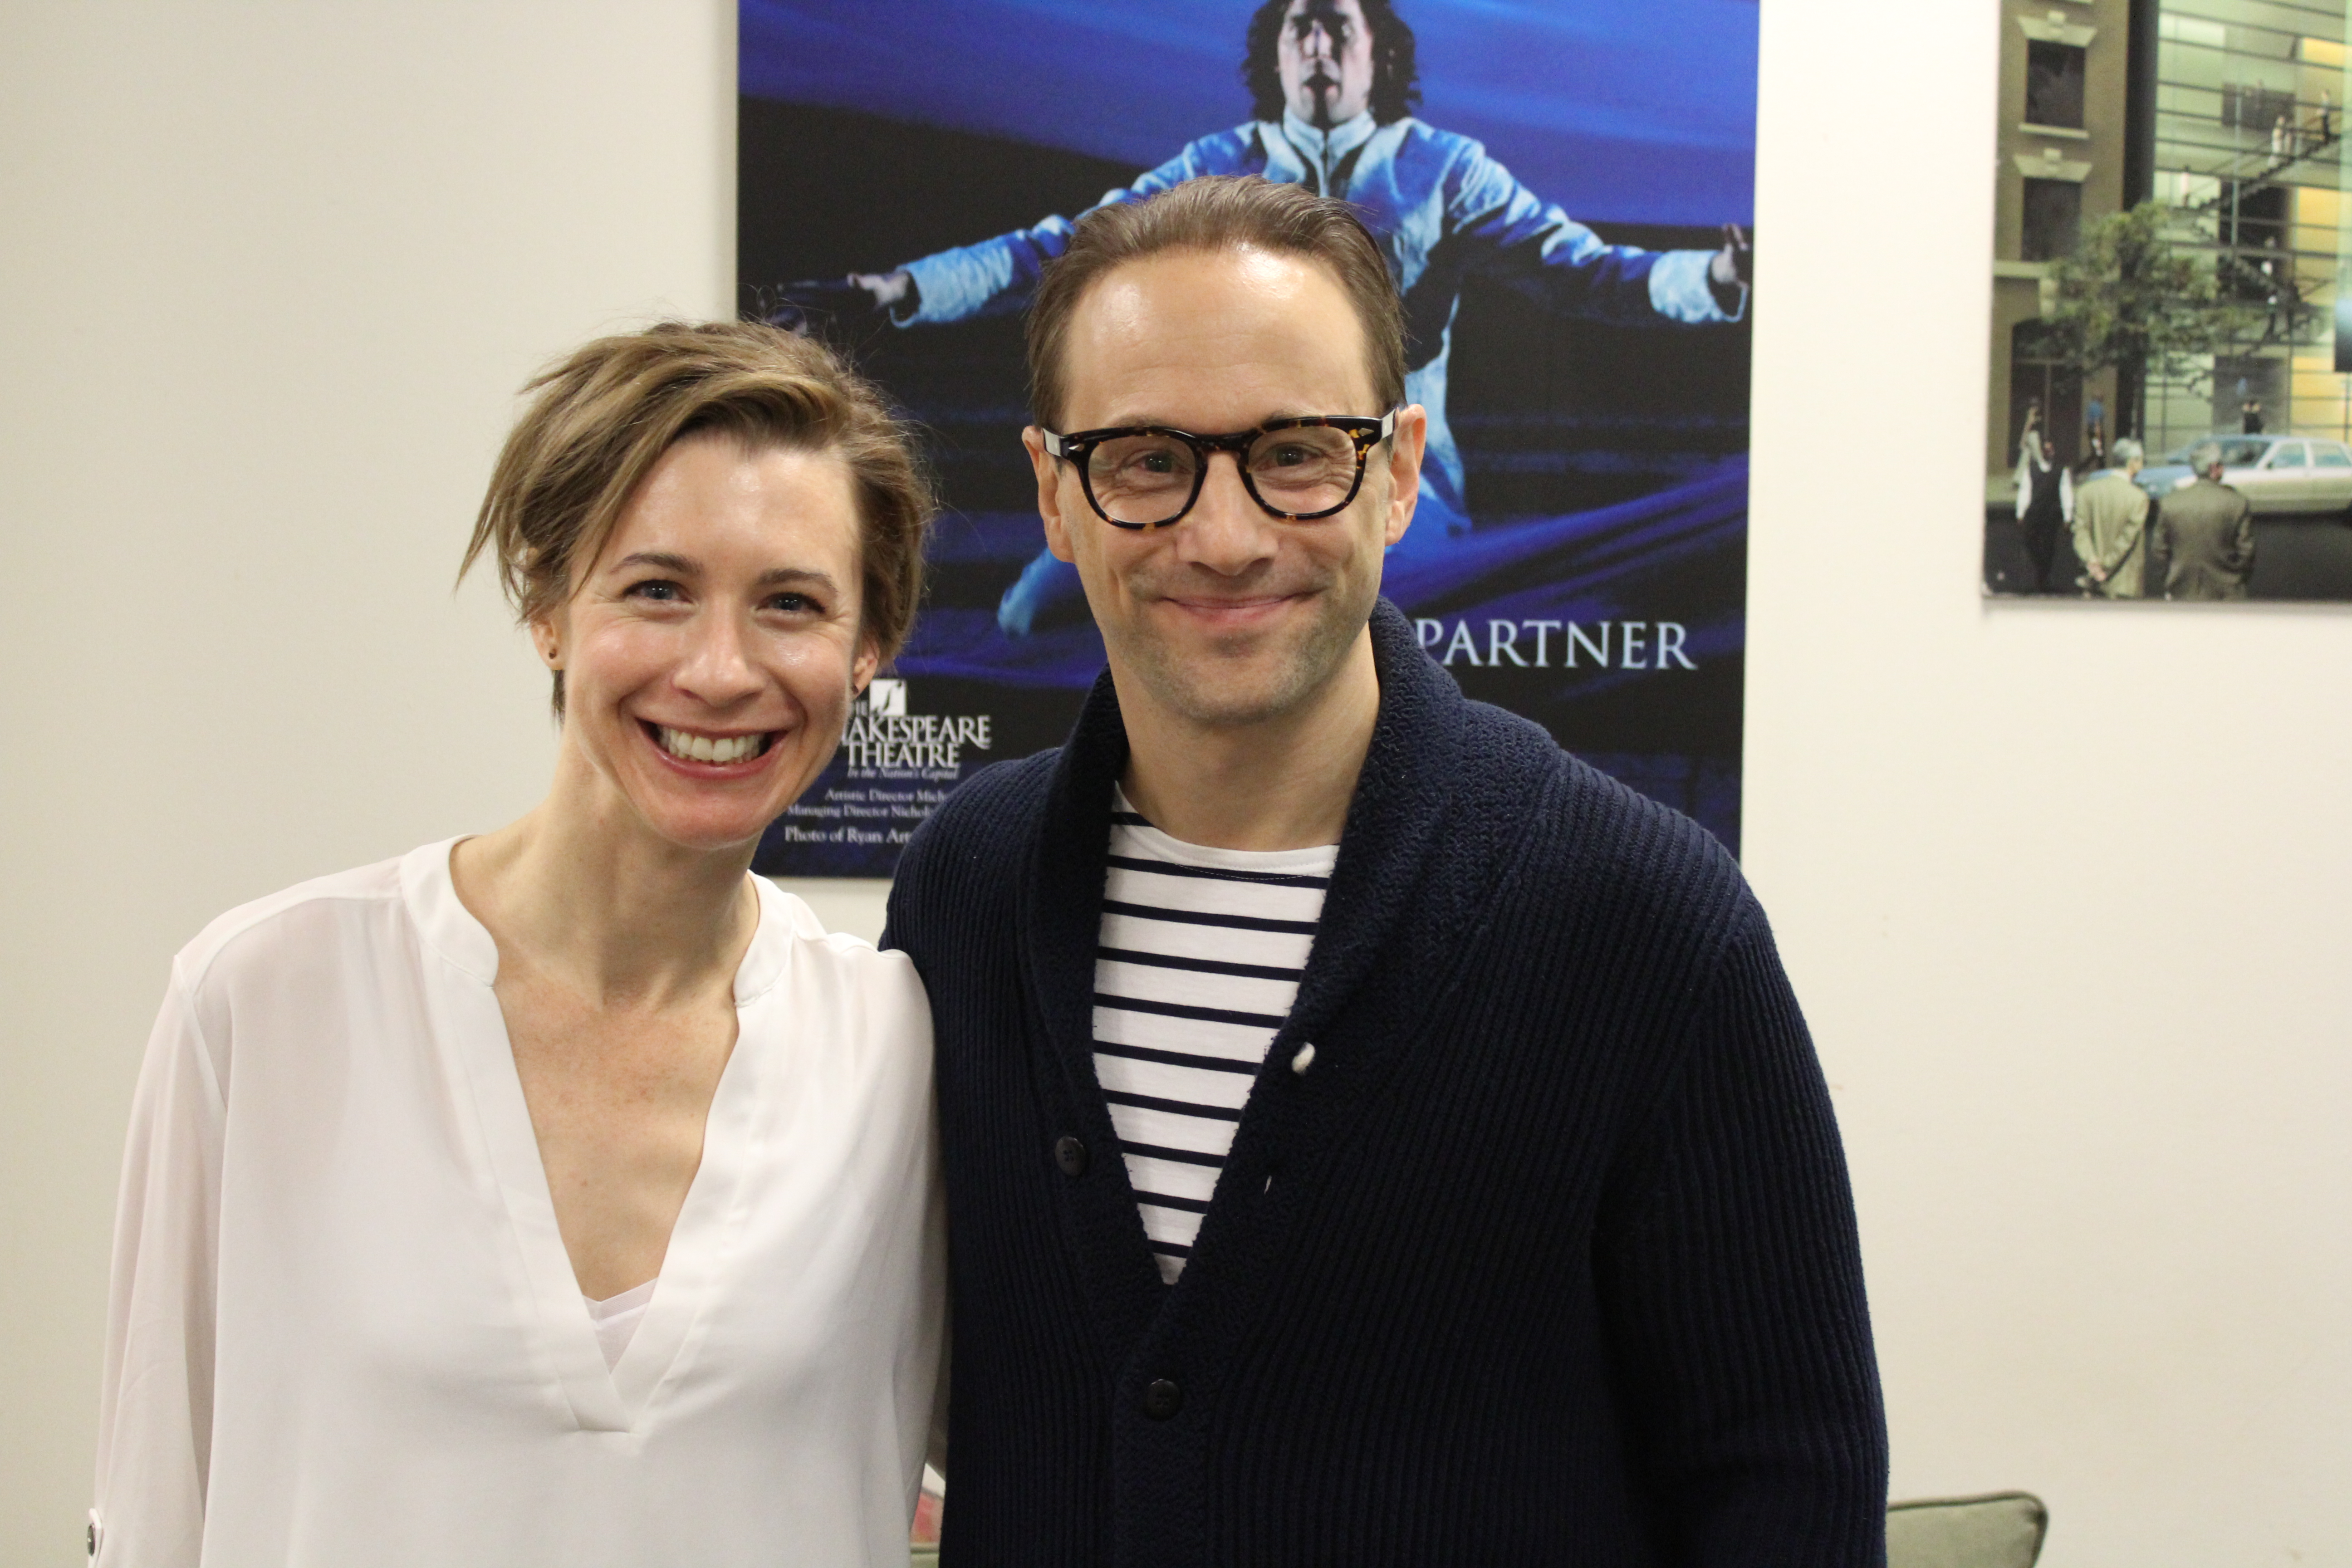 Photo of Julia Coffey and Kevin Isola at the first rehearsal of The Panties, The Partner and The Profit.